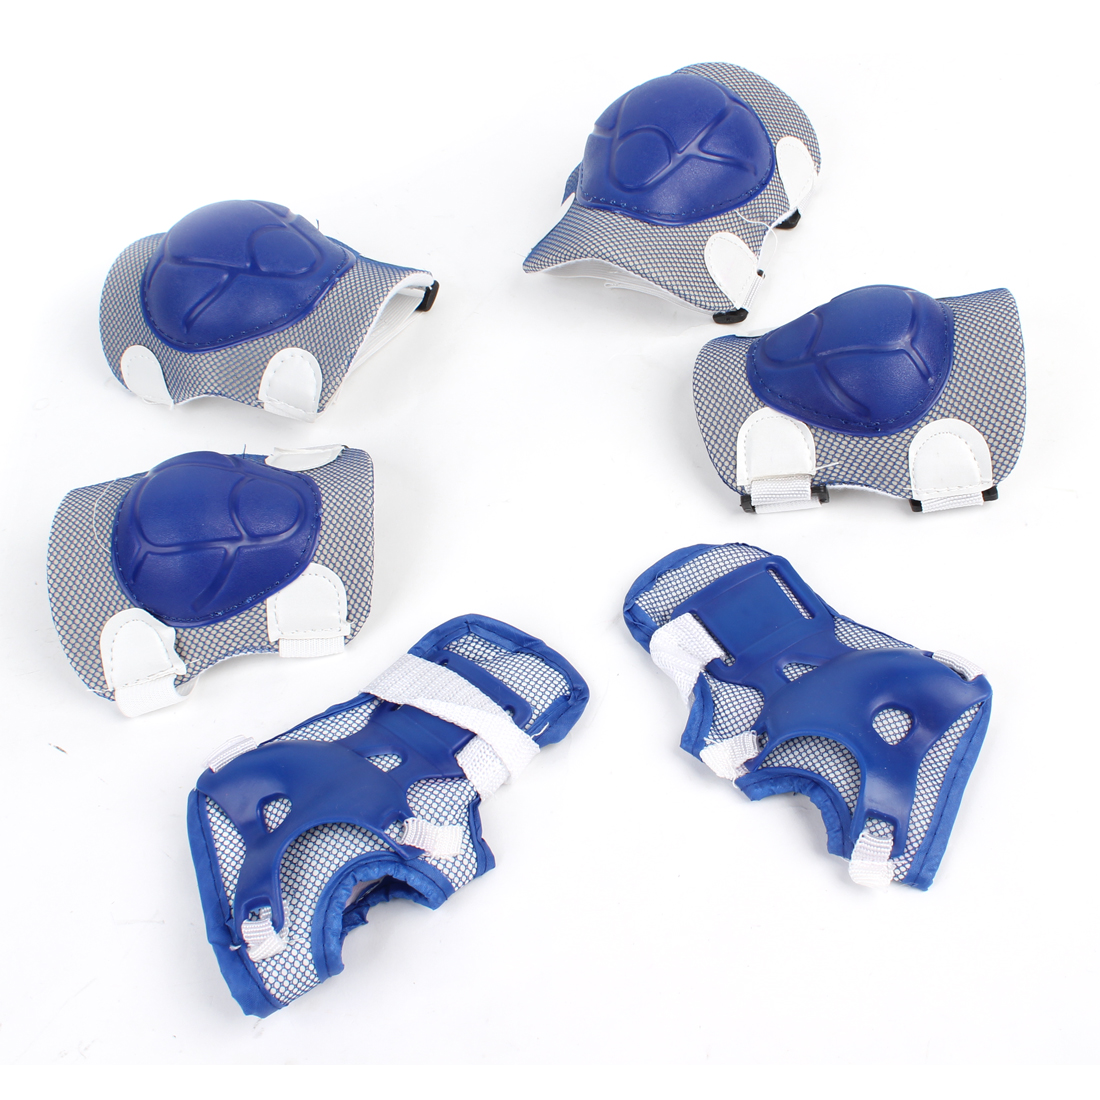 Kids Blue White Skating Turtle Shell Elbow Knee Palm Support Guard 6 in 1 Set